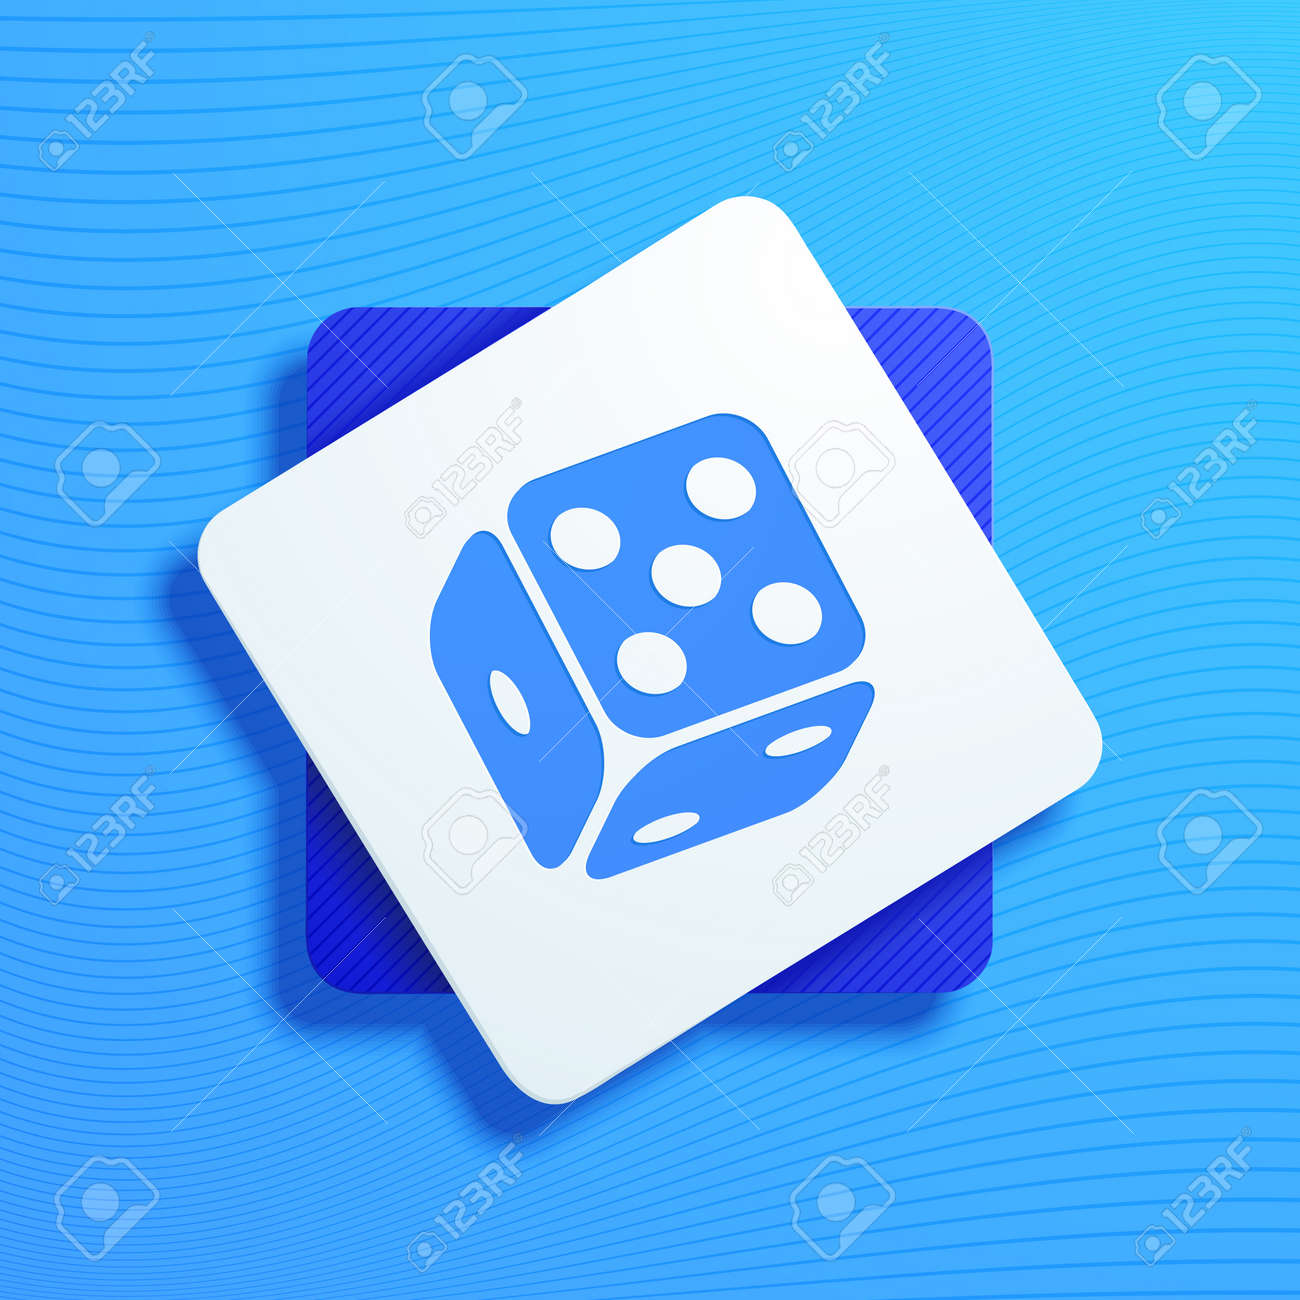 Vector illustration on the theme of gambling Stock Vector - 19353499